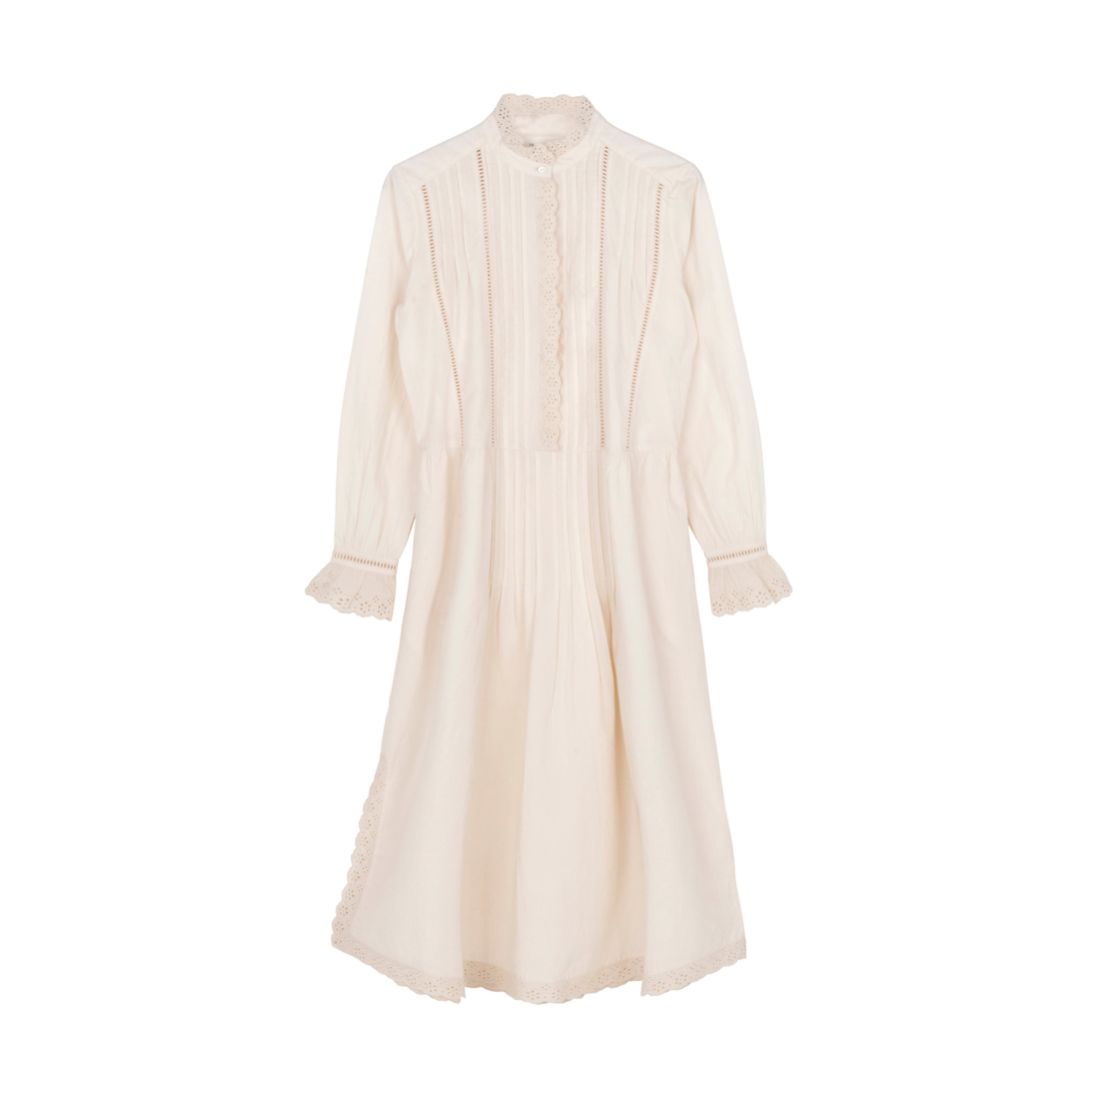 DAHLIA SHIRTDRESS IN ORGANIC COTTON